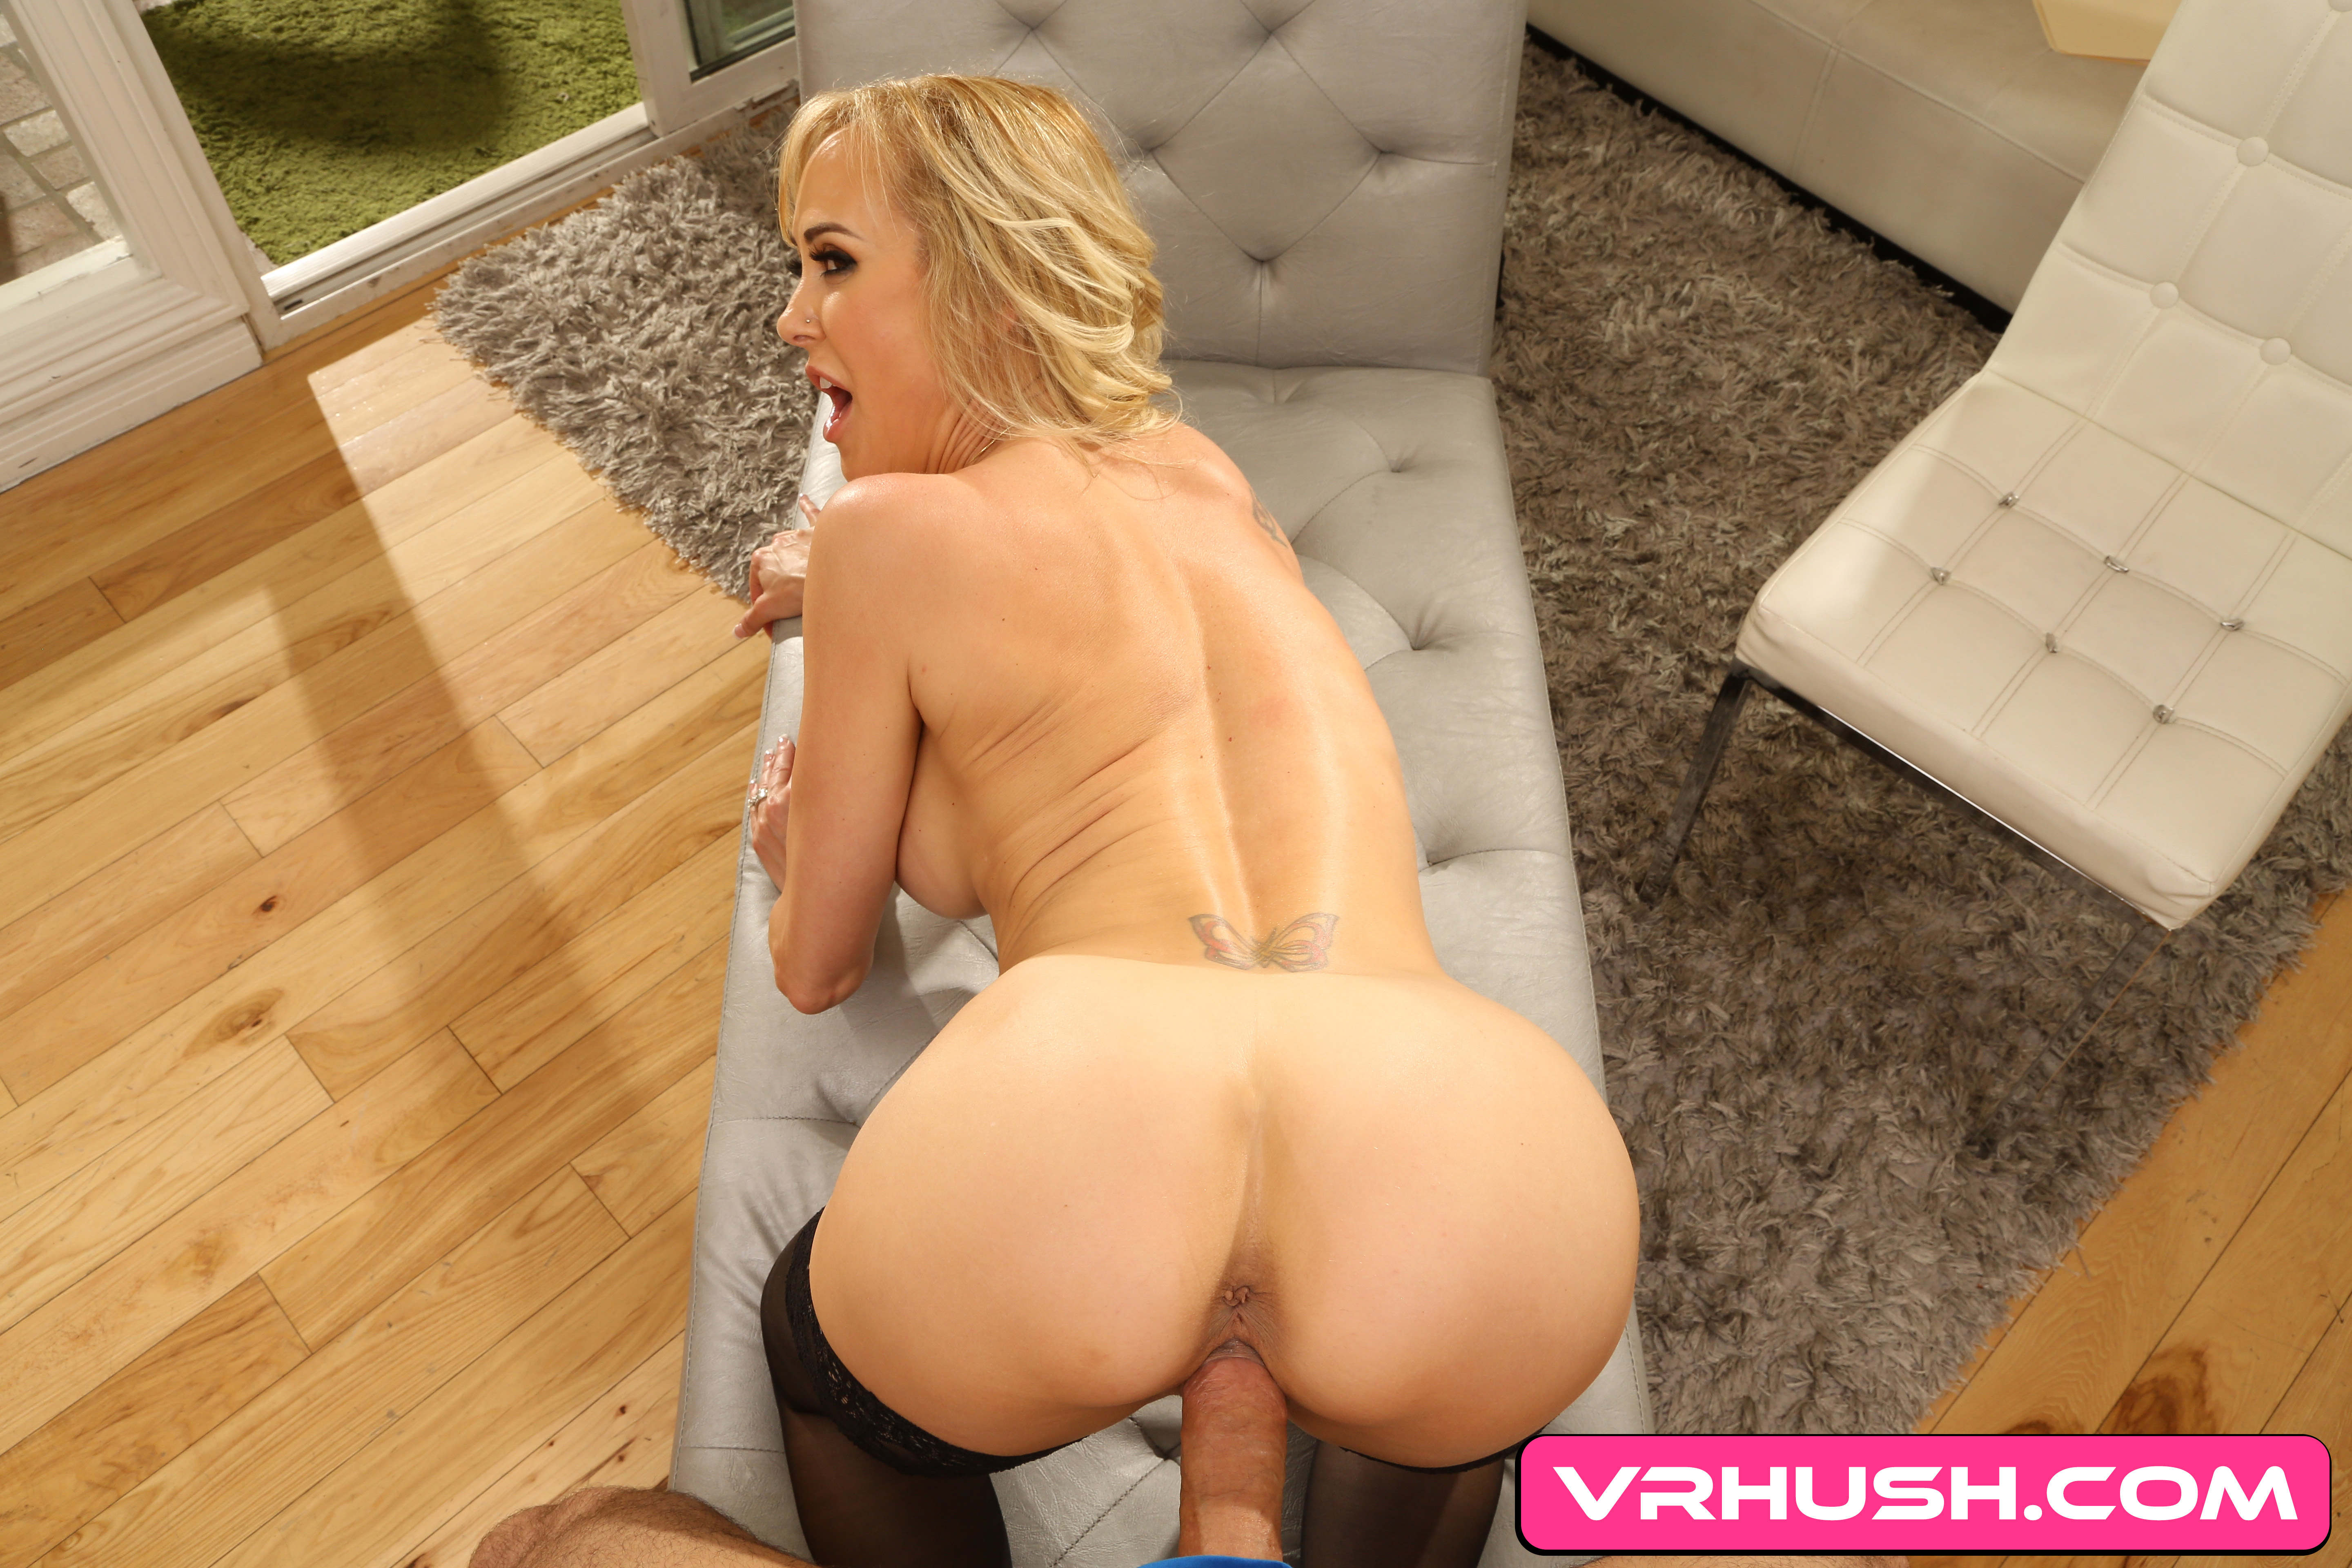 Giant dildo and home hd